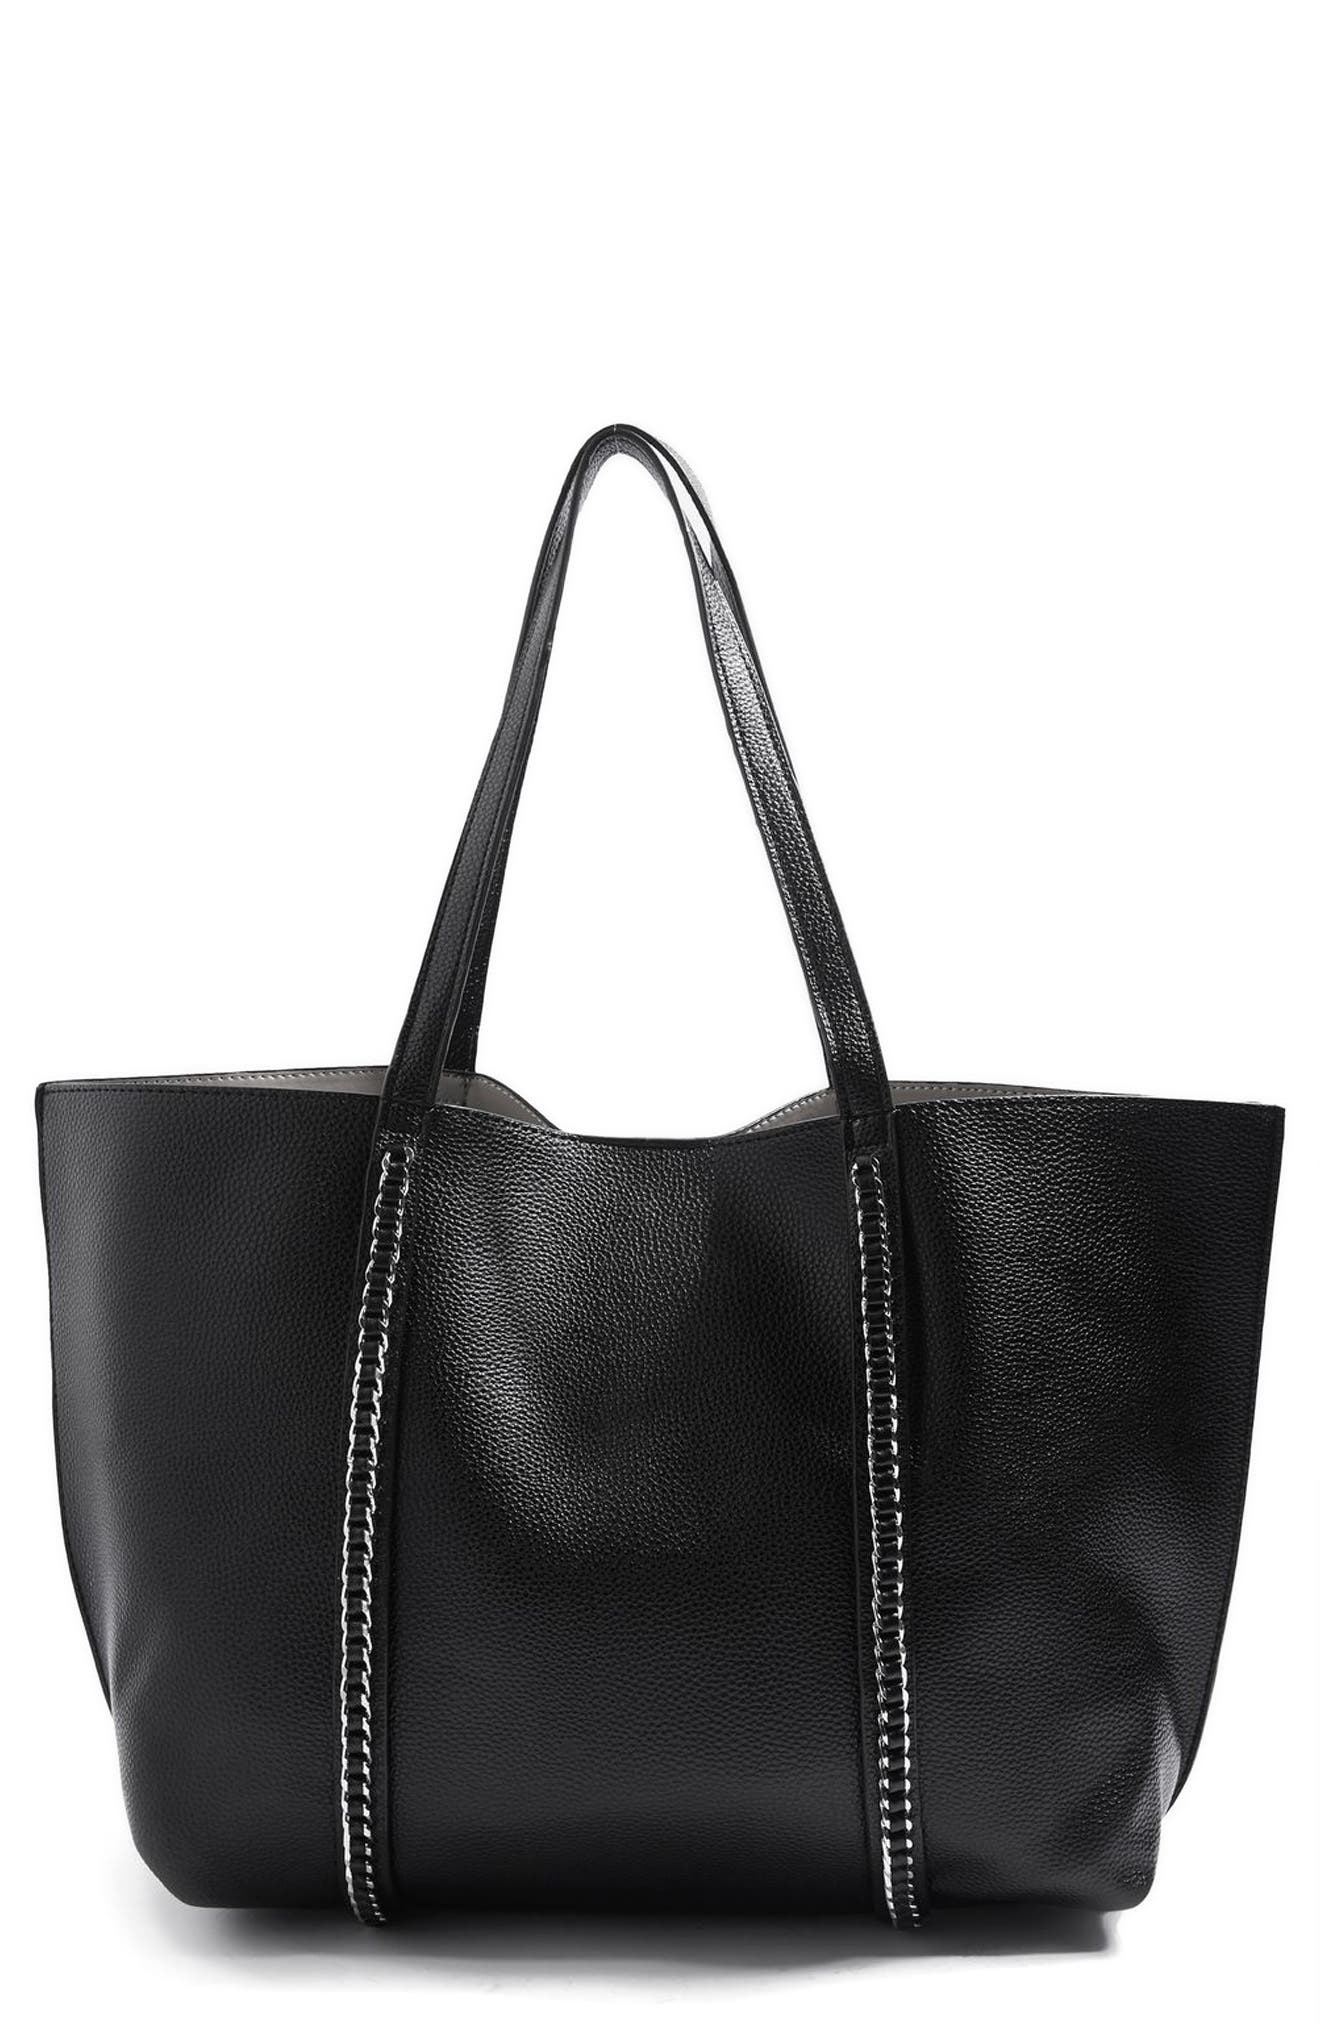 Topshop Sabrina Chain Trim Faux Leather Shopper